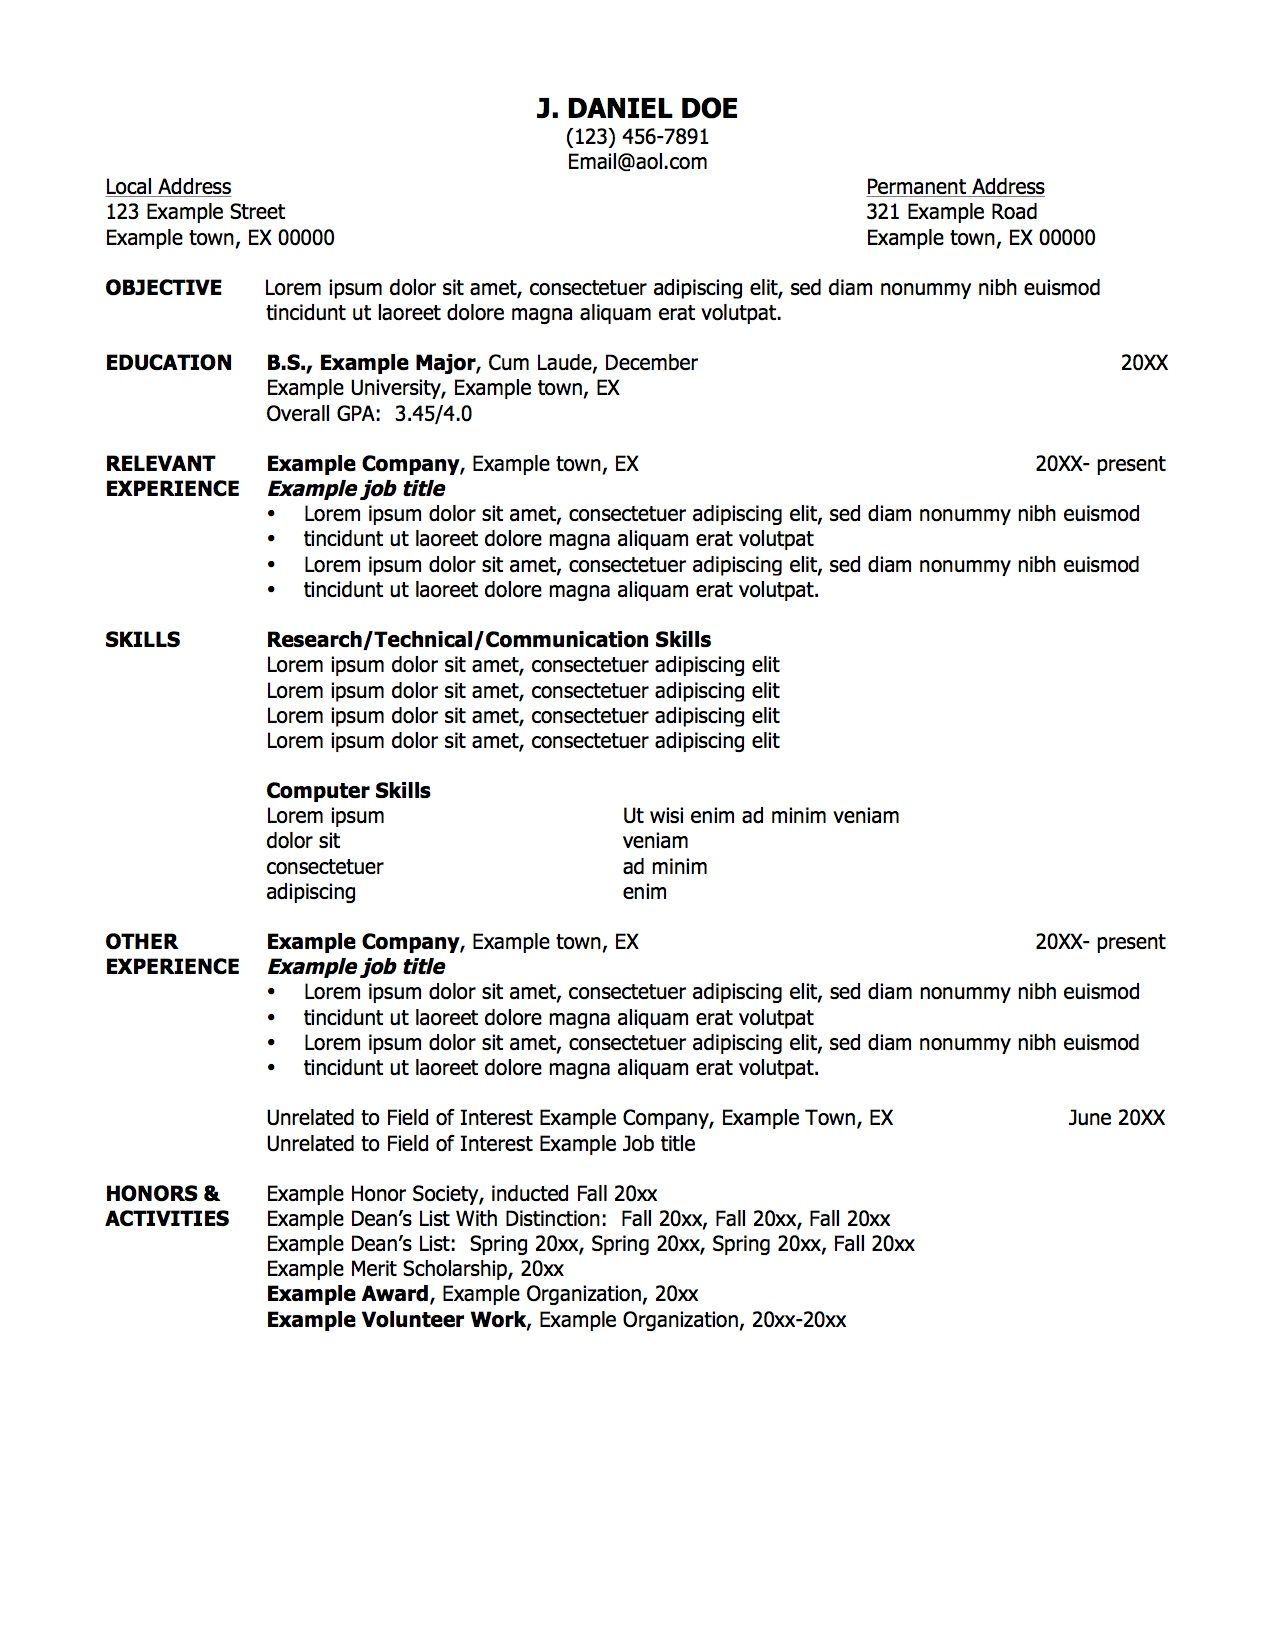 Example of resume for a job